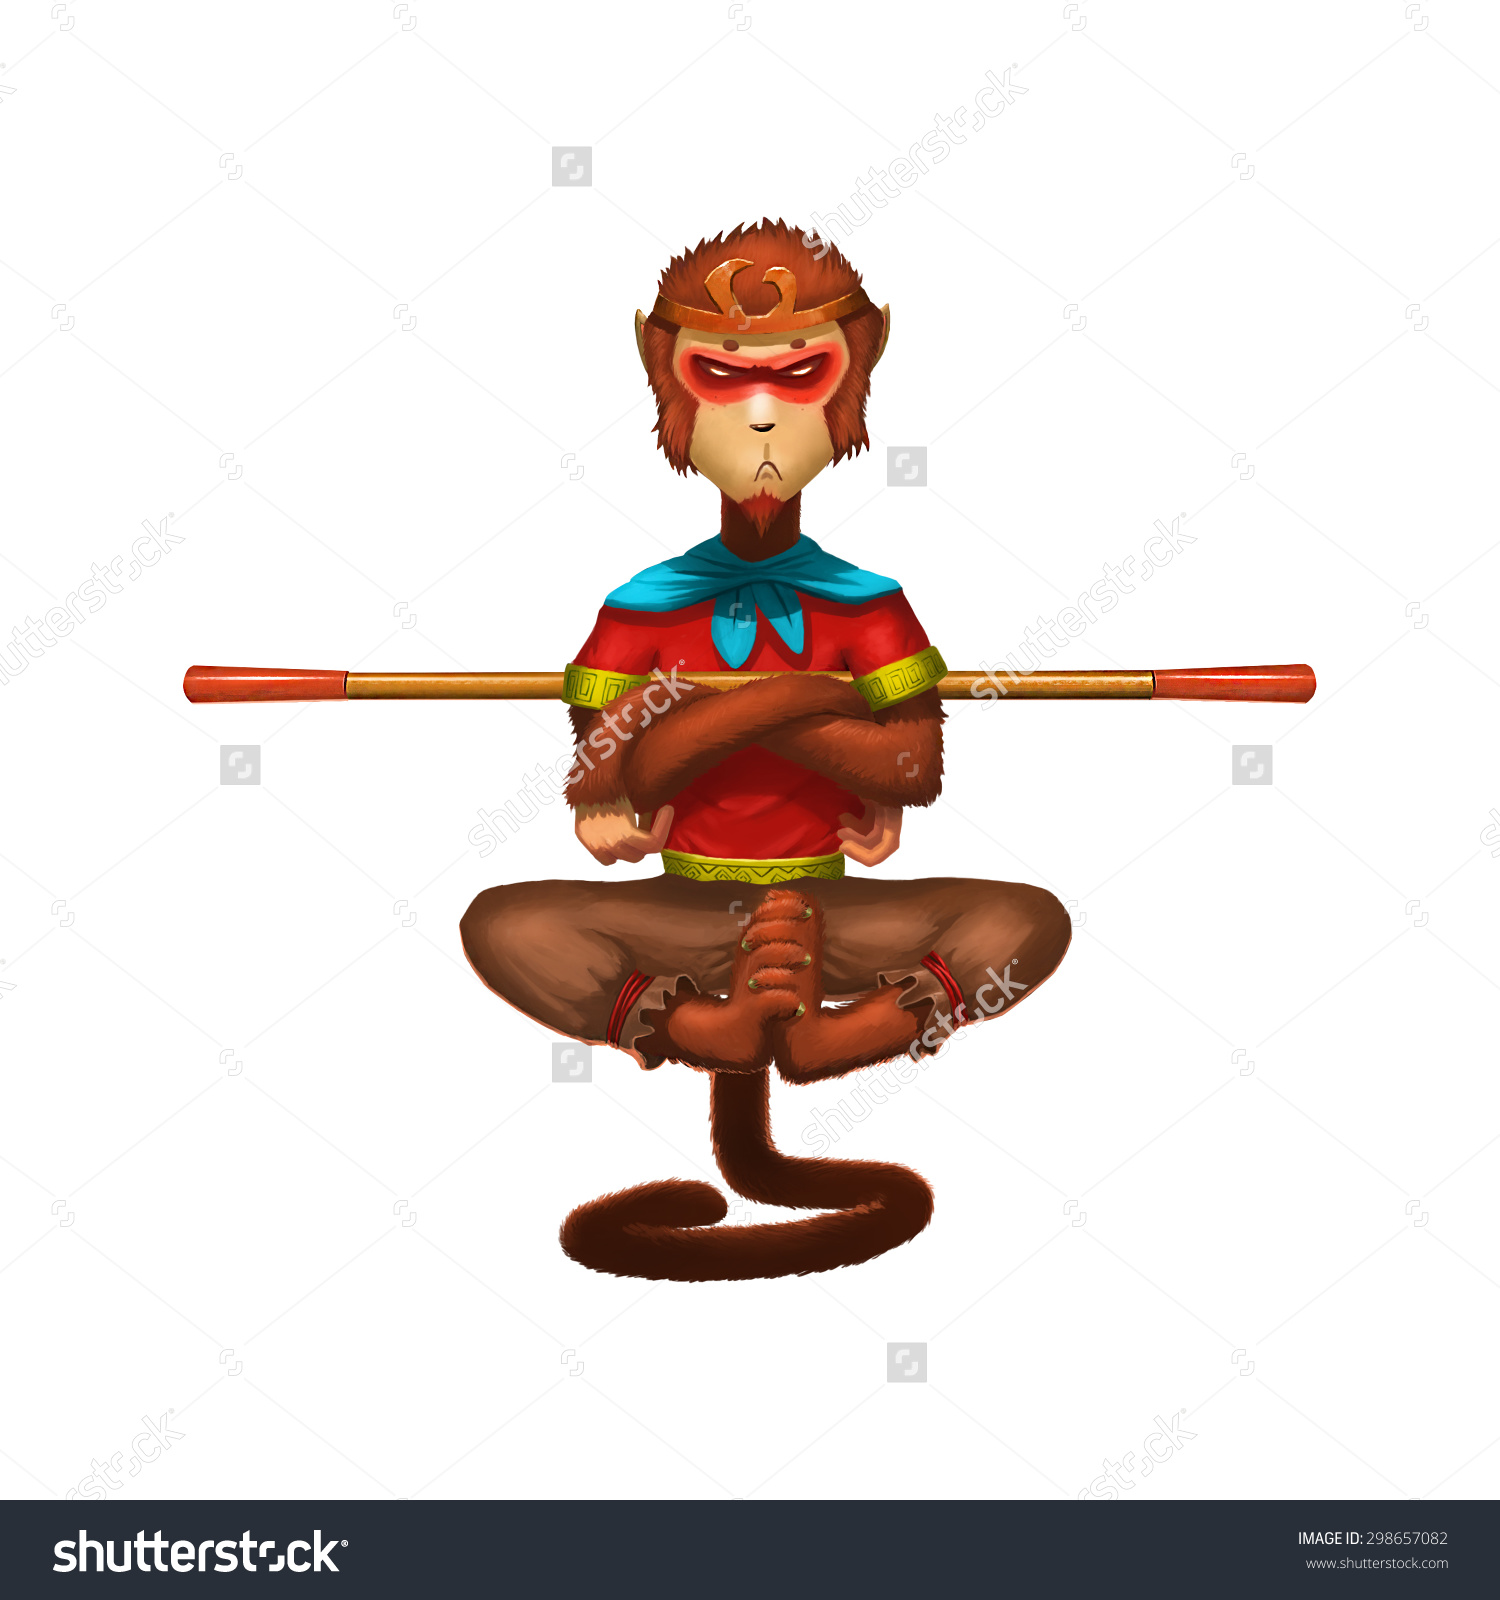 Illustration Monkey King Hero Back Element Stock Illustration.